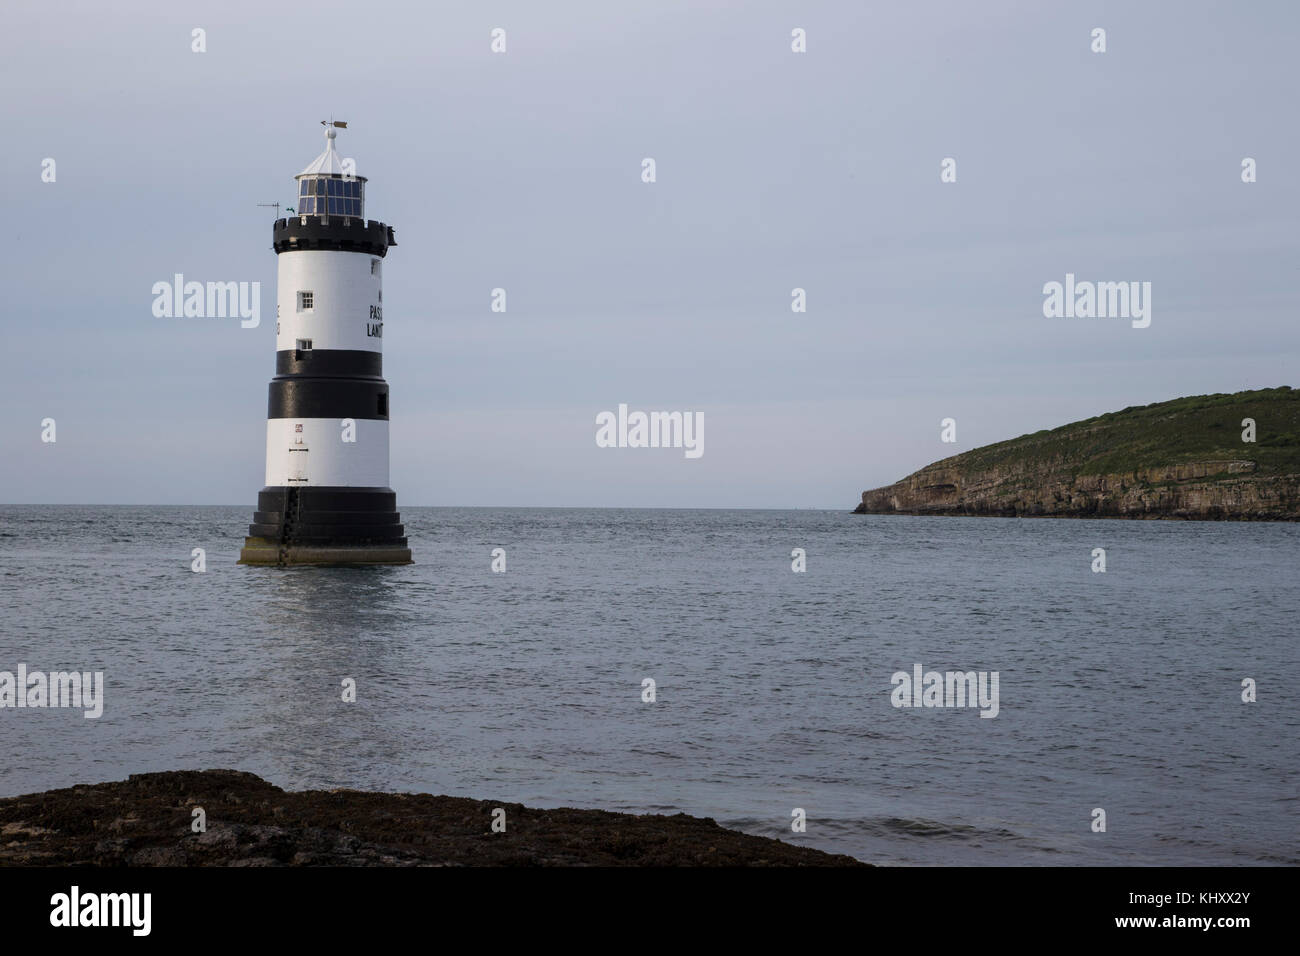 Penmon lighthouse, Trwyn Du Lighthouse between Black Point near Penmon and Ynys Seriol, or Puffin Island, at the - Stock Image